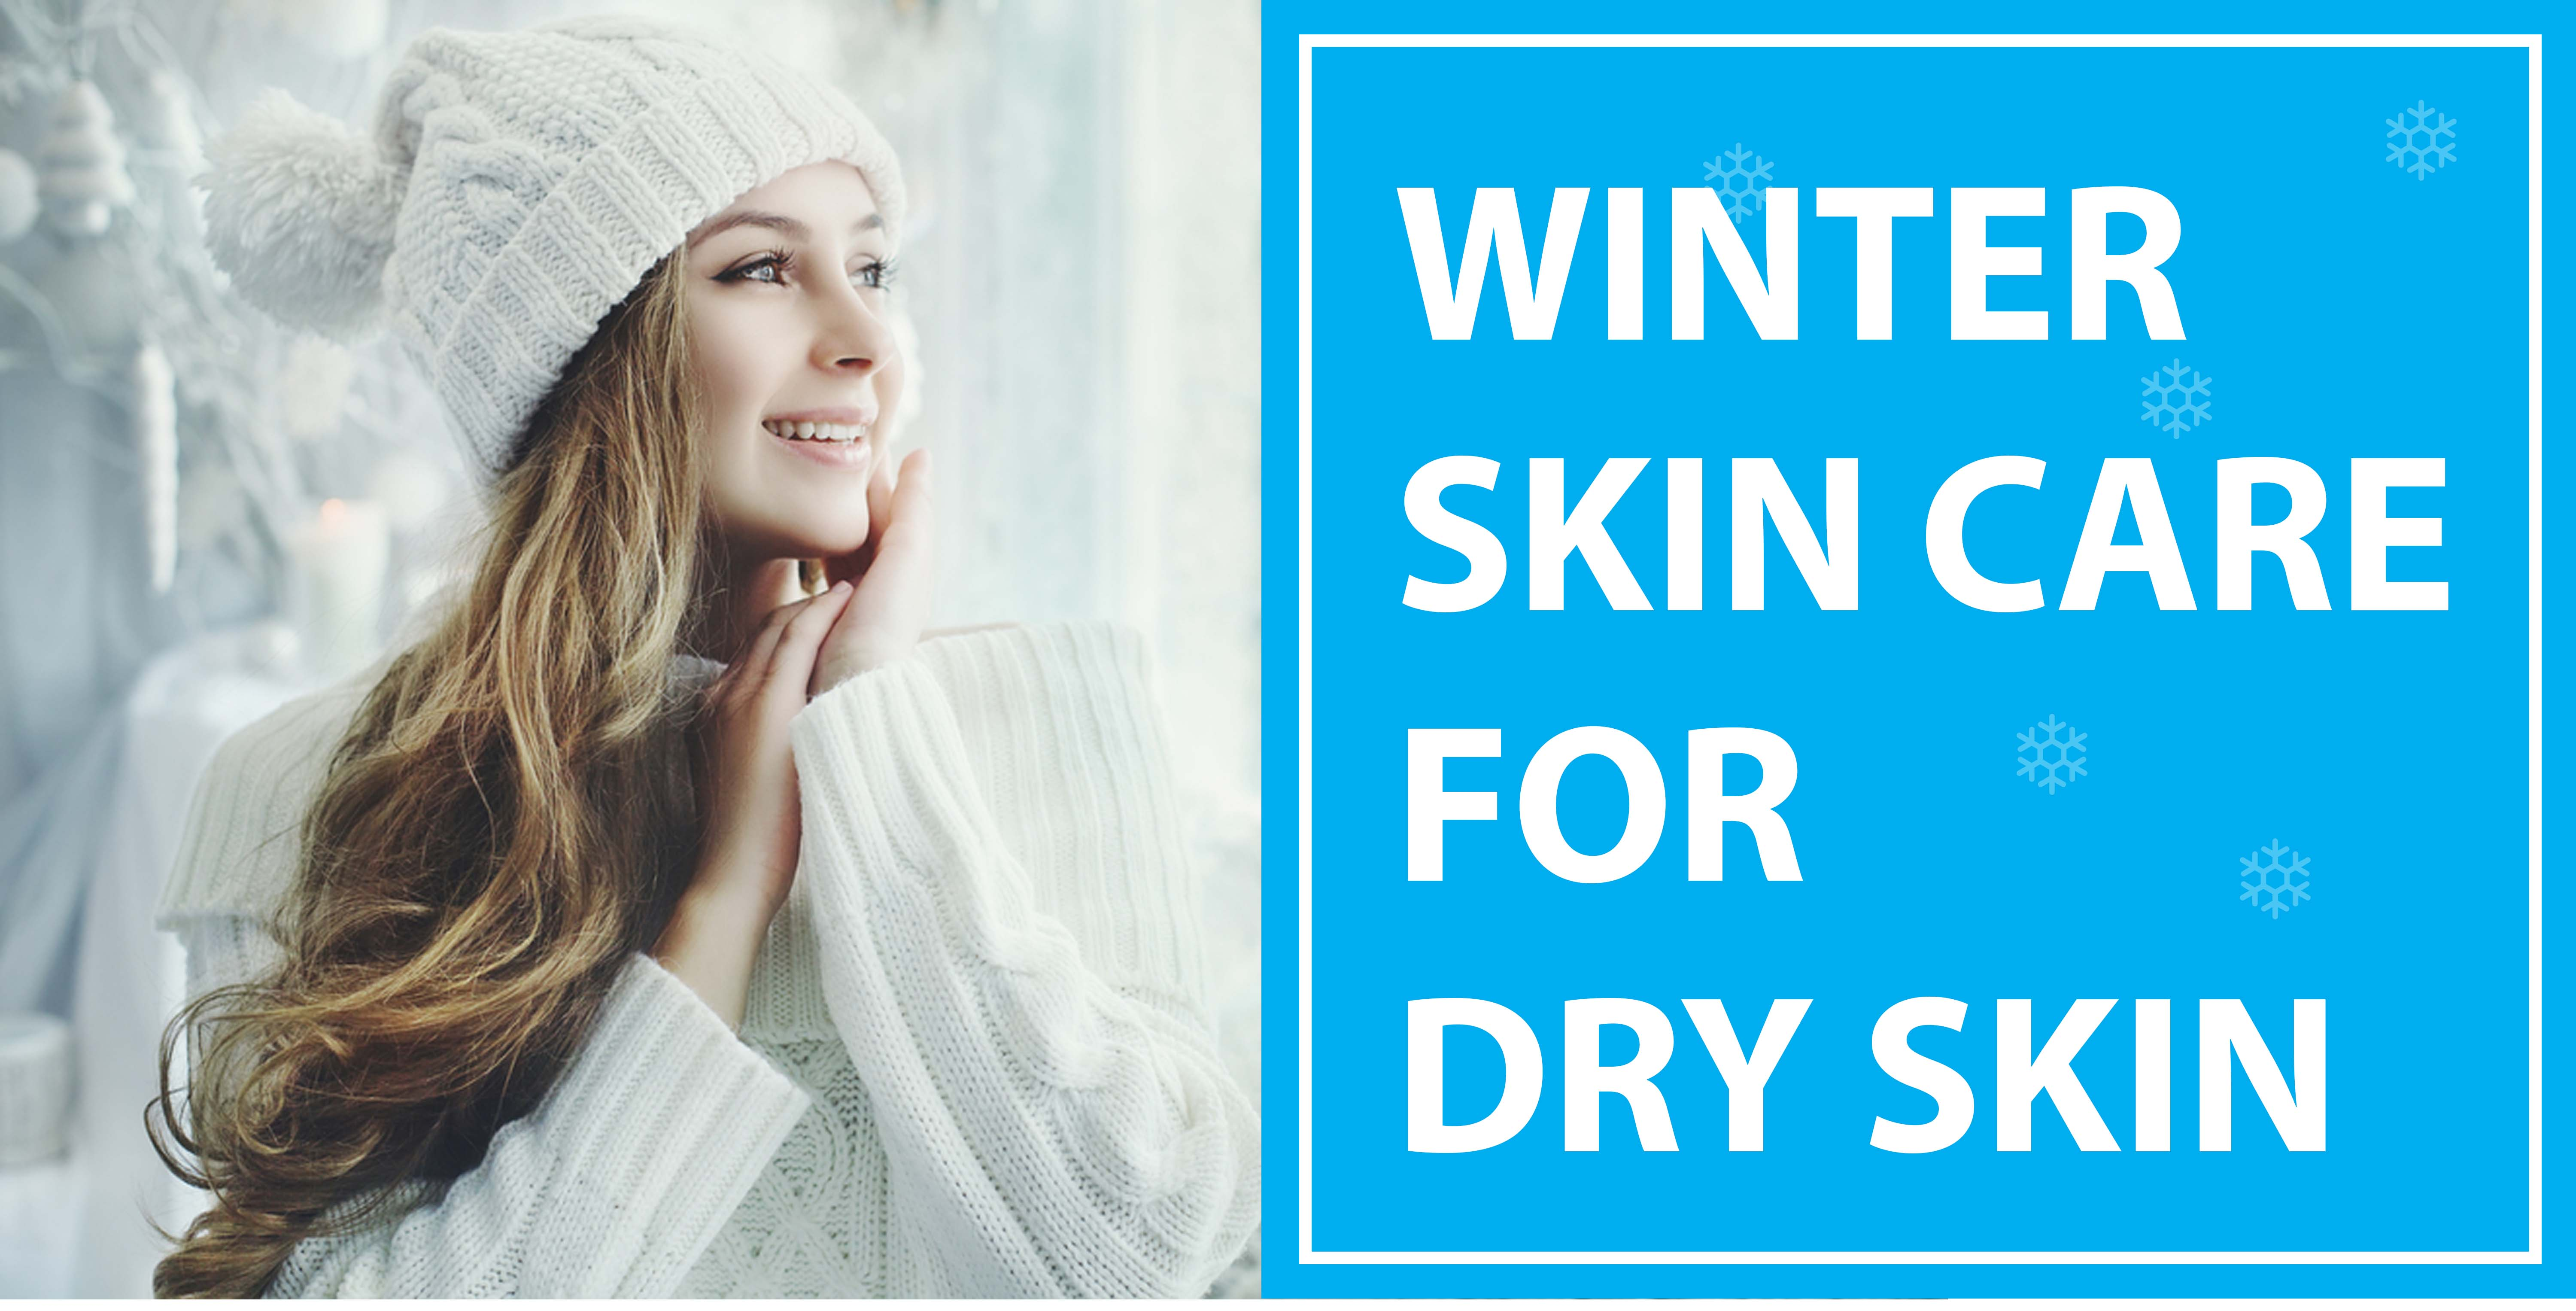 Winter skin care routine for dry skin